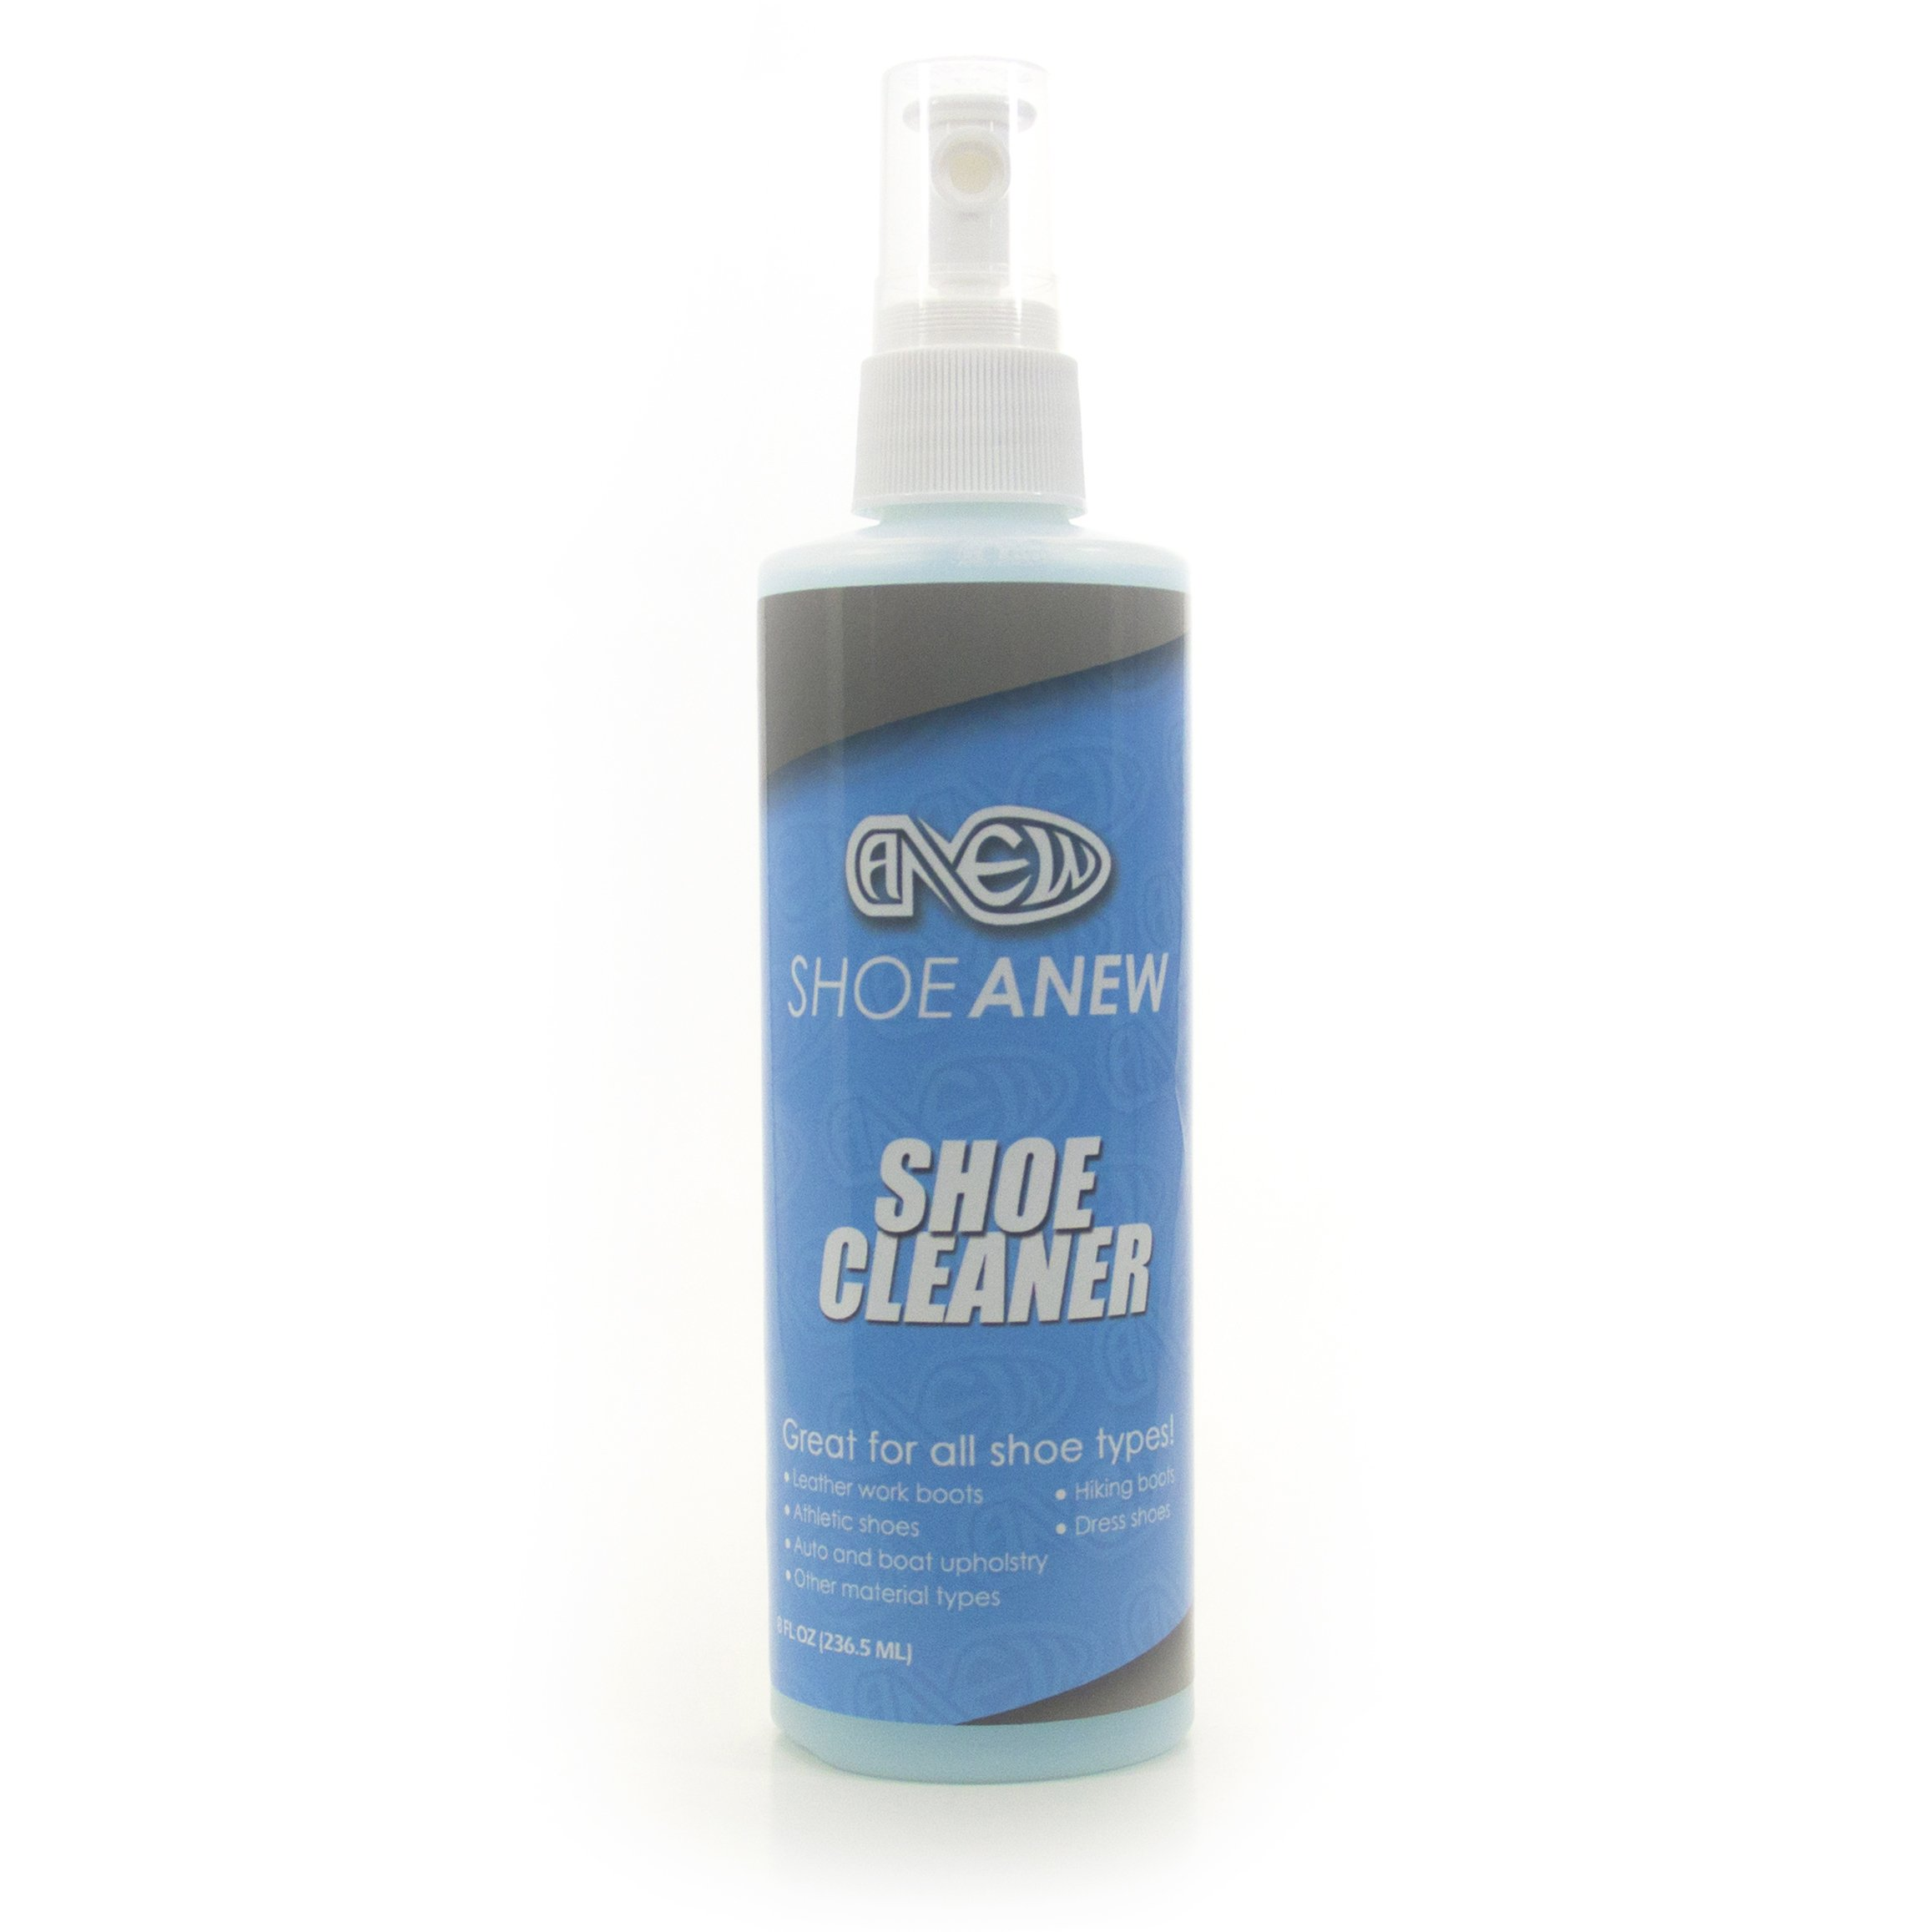 ShoeAnew - Shoe Cleaner - 8 Oz. Fabric Cleaner Solution